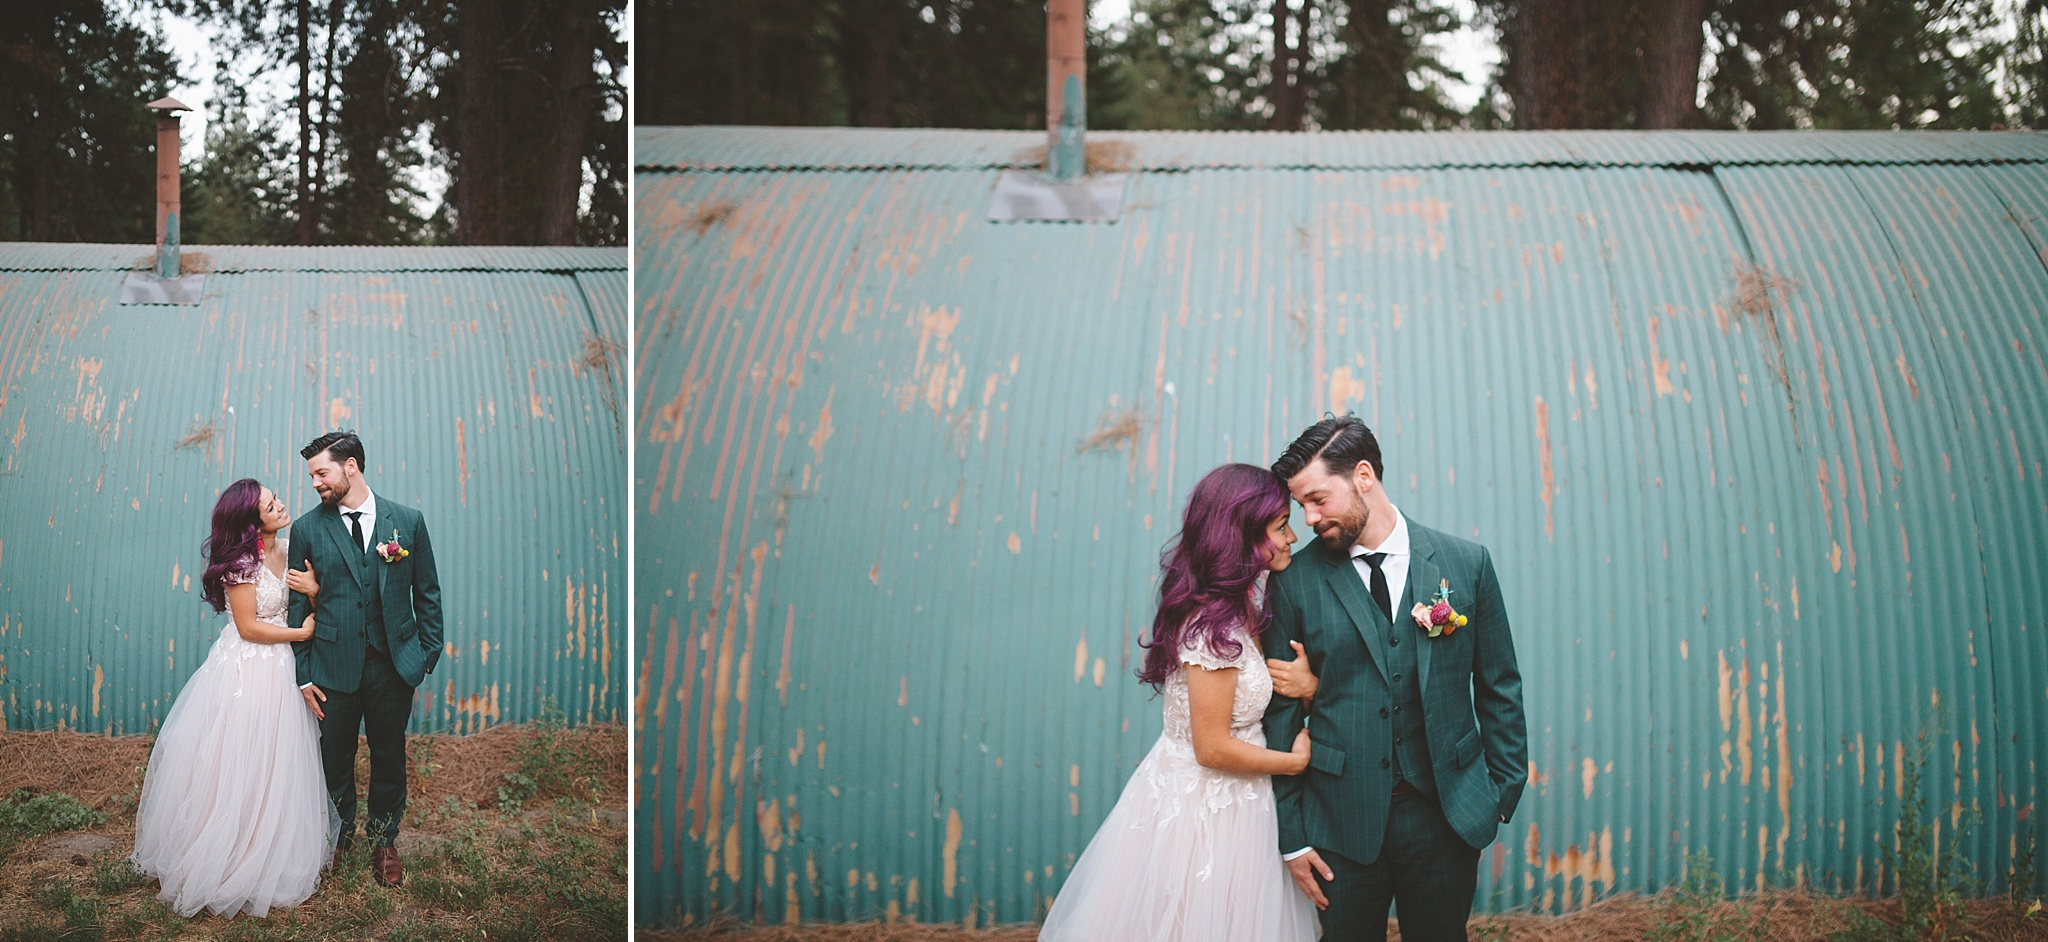 colorful wedding portraits in washington